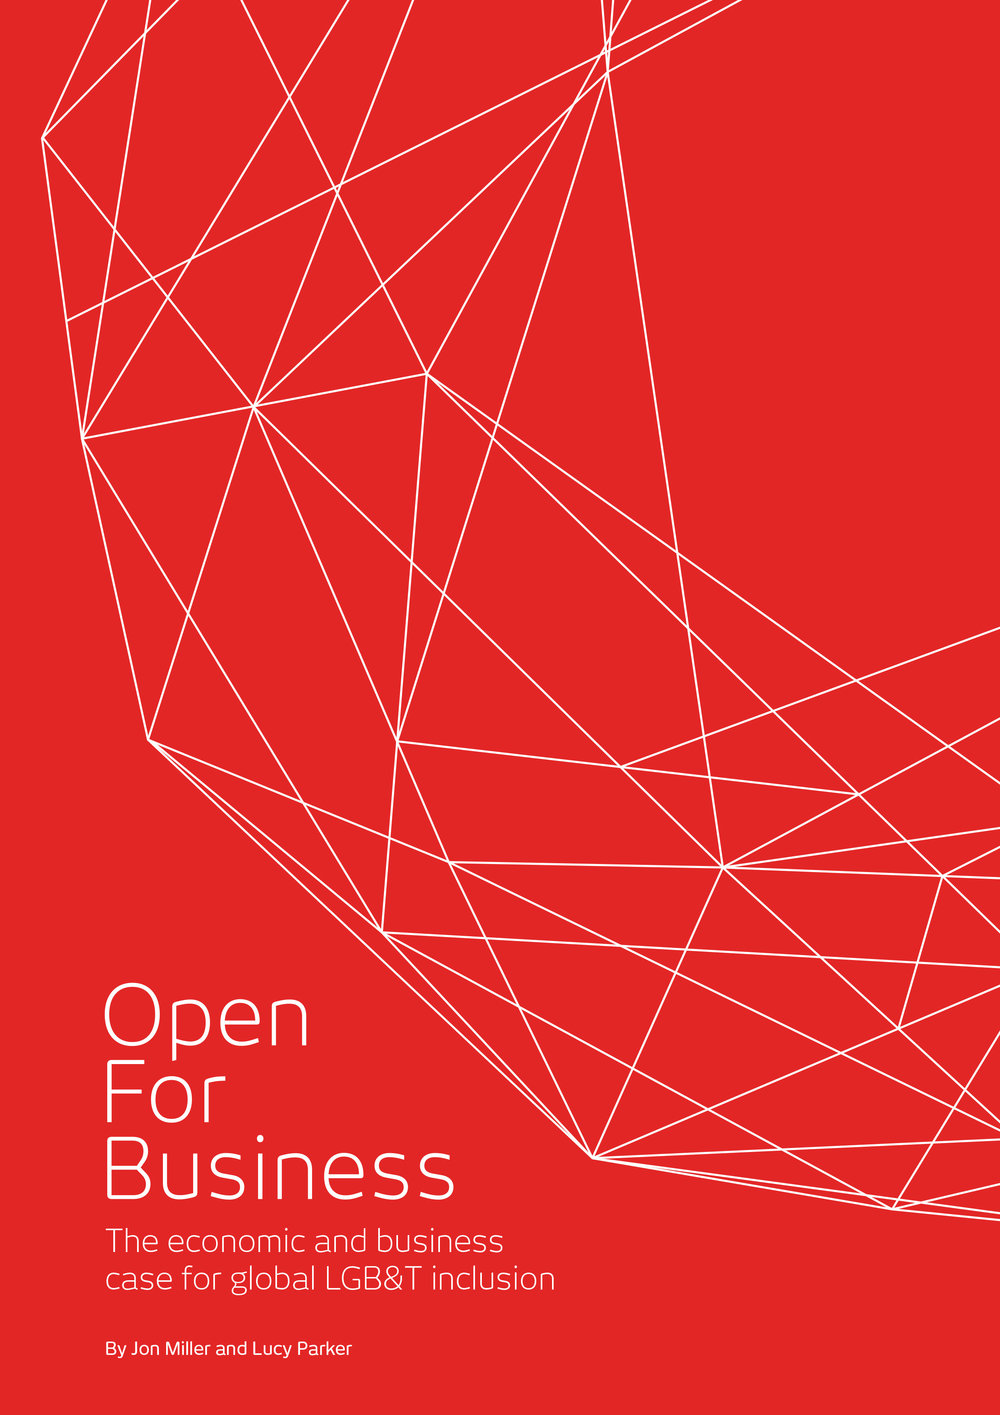 Open For Business_Report_2015-1.jpg